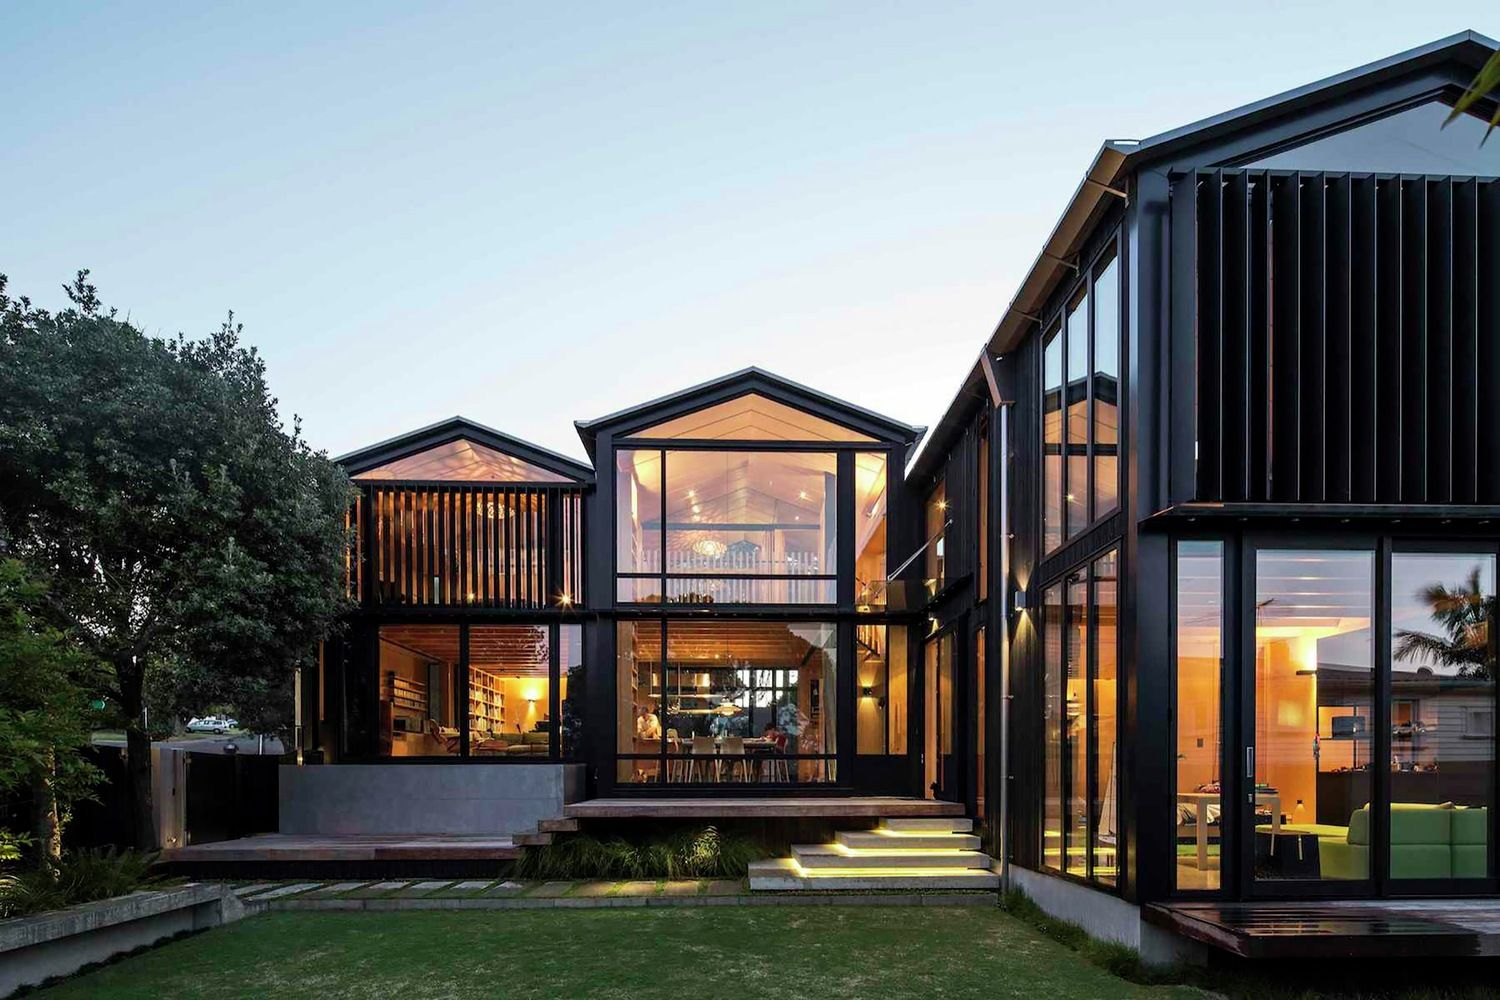 Galeria de Boatsheds / Strachan Group Architects + Rachael Rush - 1